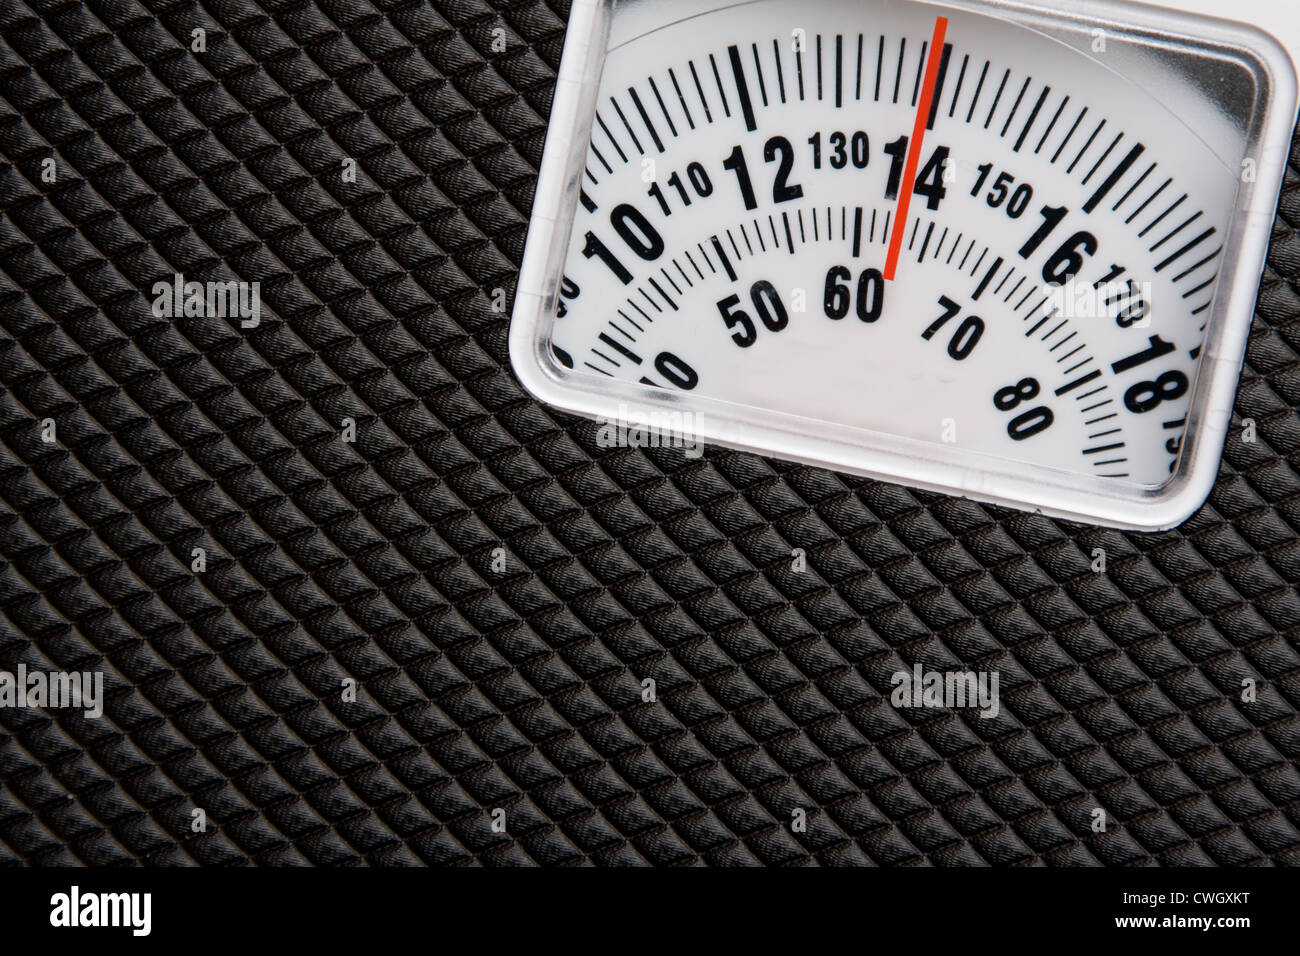 Scale showing weight - Stock Image